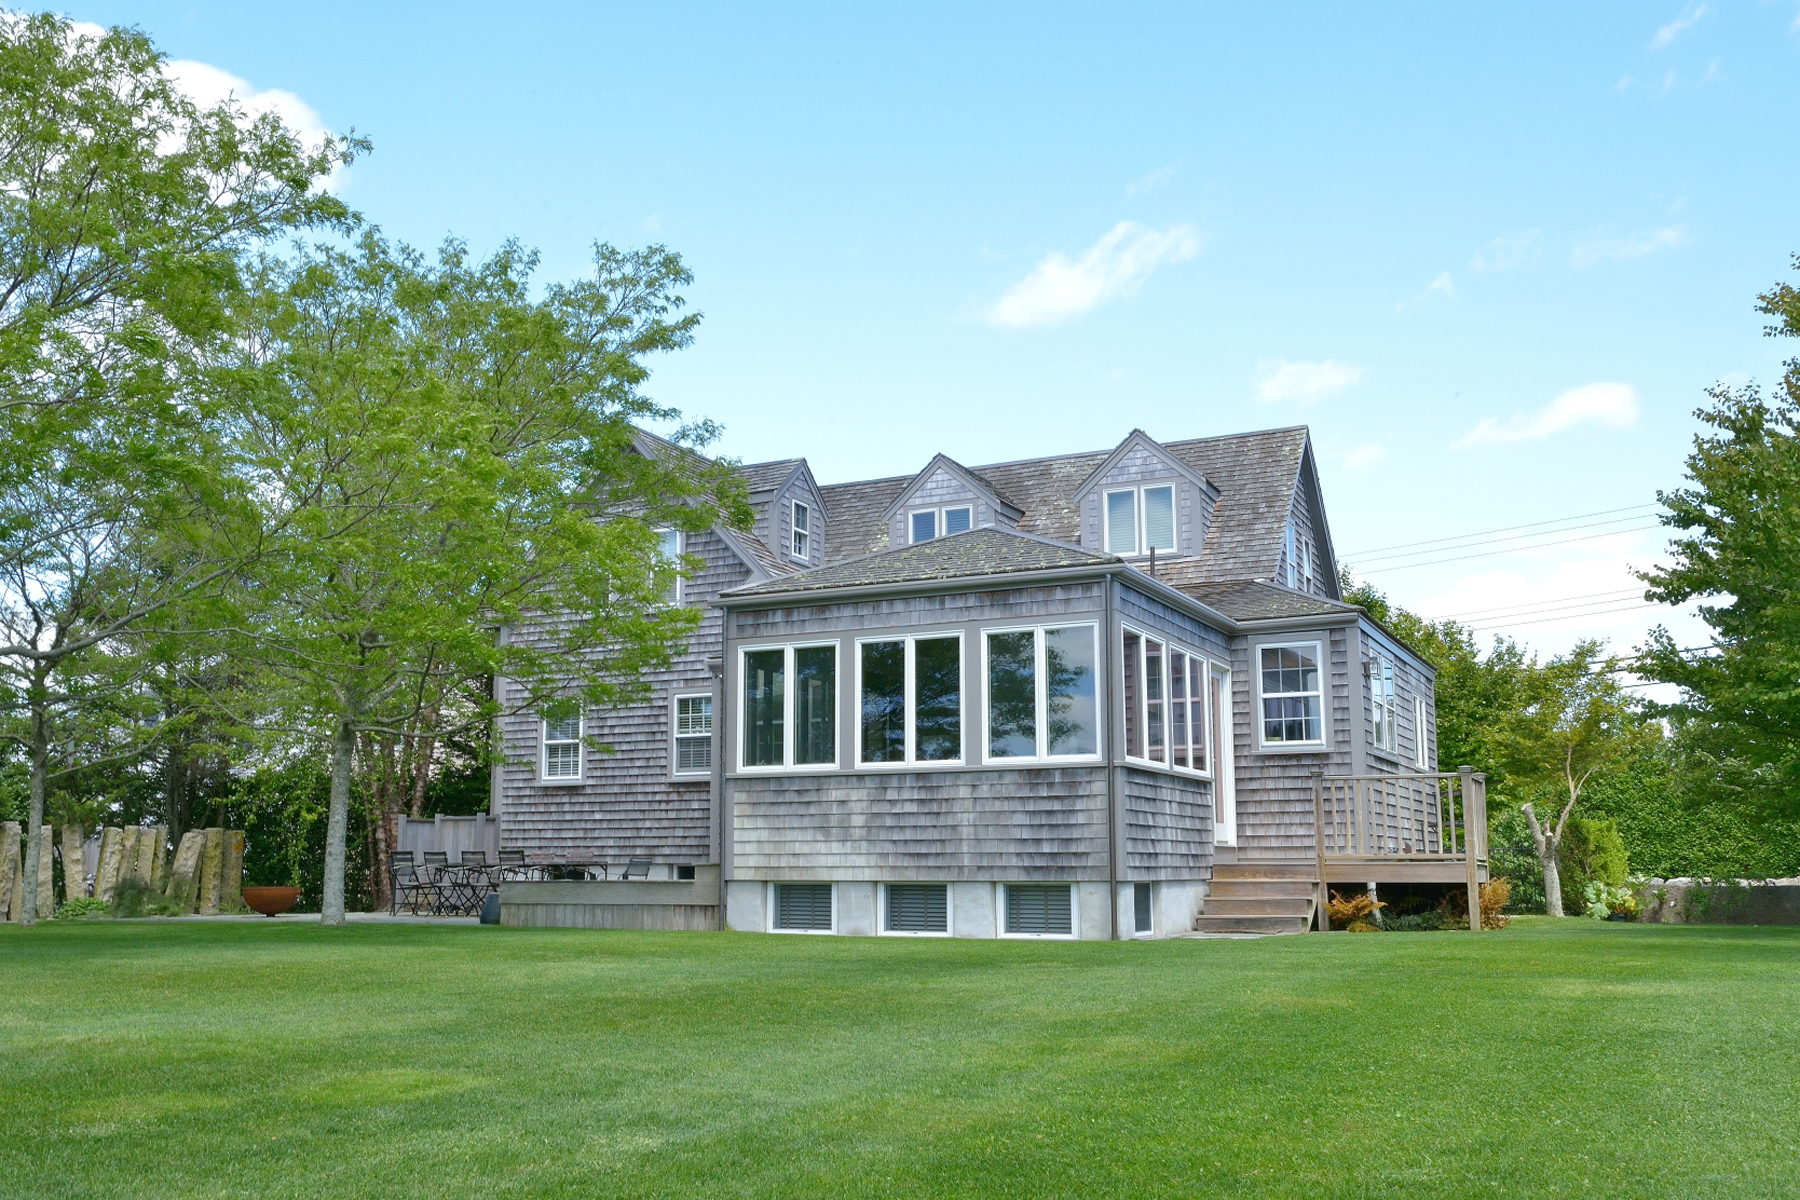 Casa Unifamiliar por un Venta en Private and Serene! 81 Hummock Pond Road Nantucket, Massachusetts, 02554 Estados Unidos